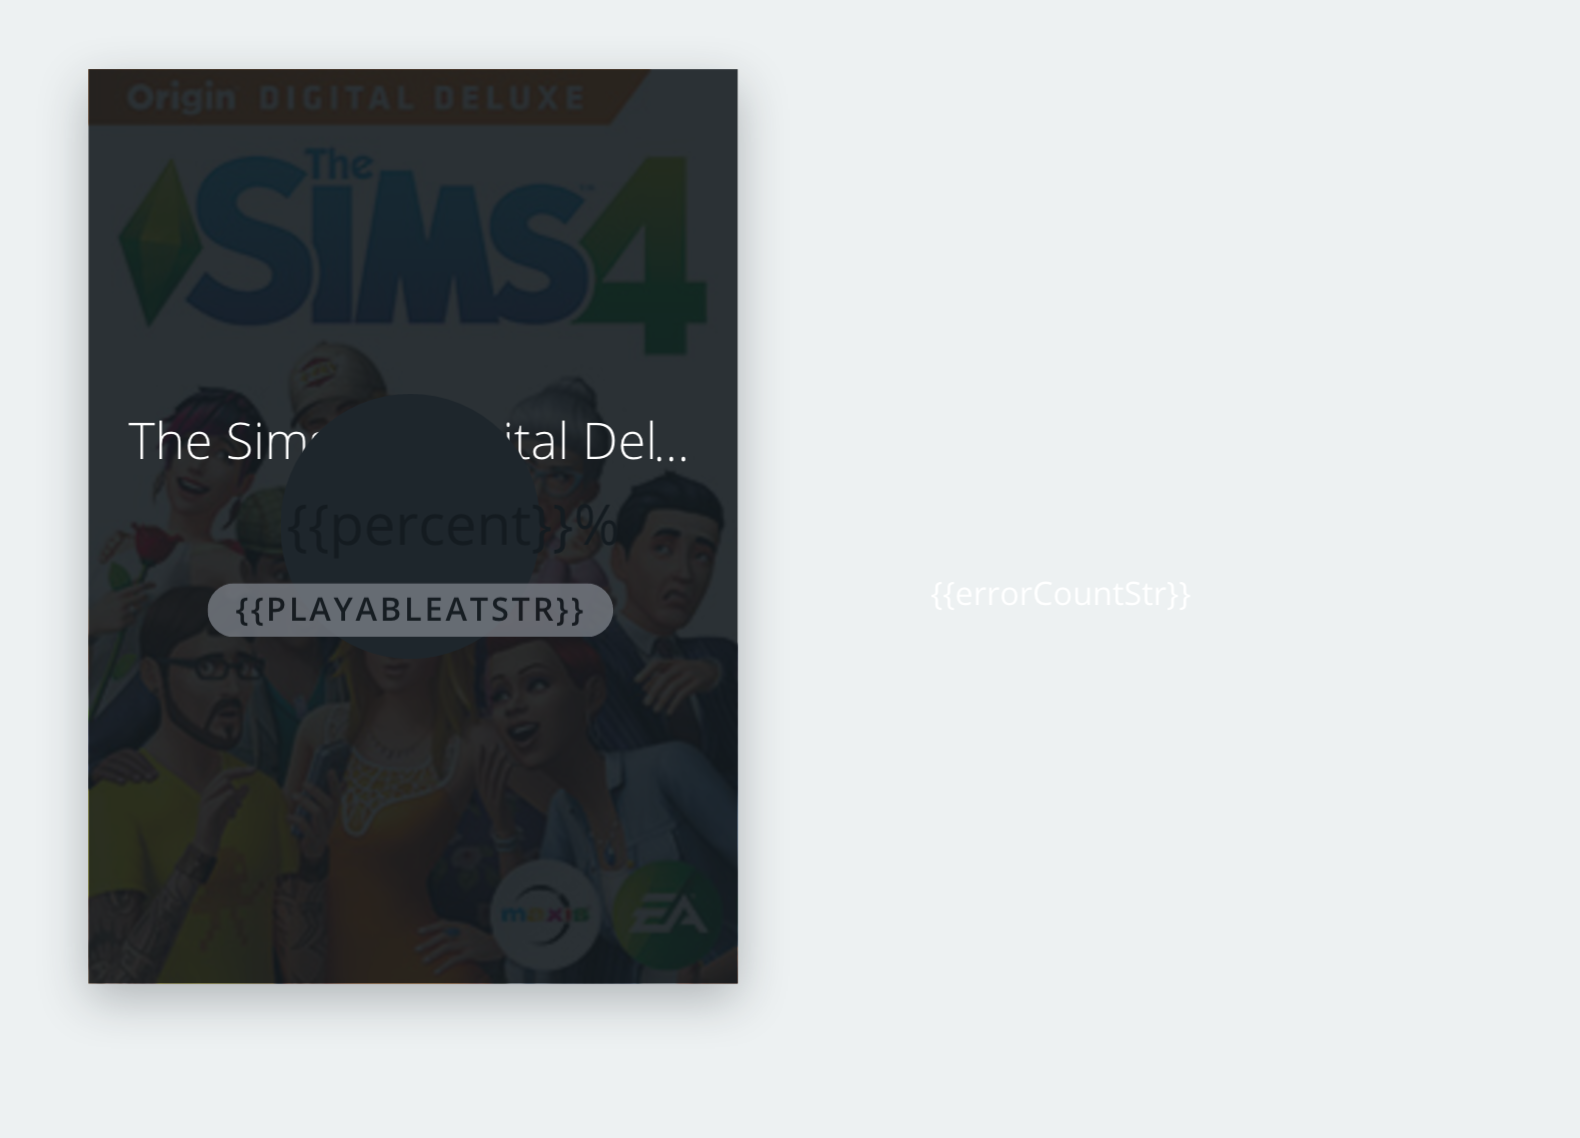 sims 4 update download failed